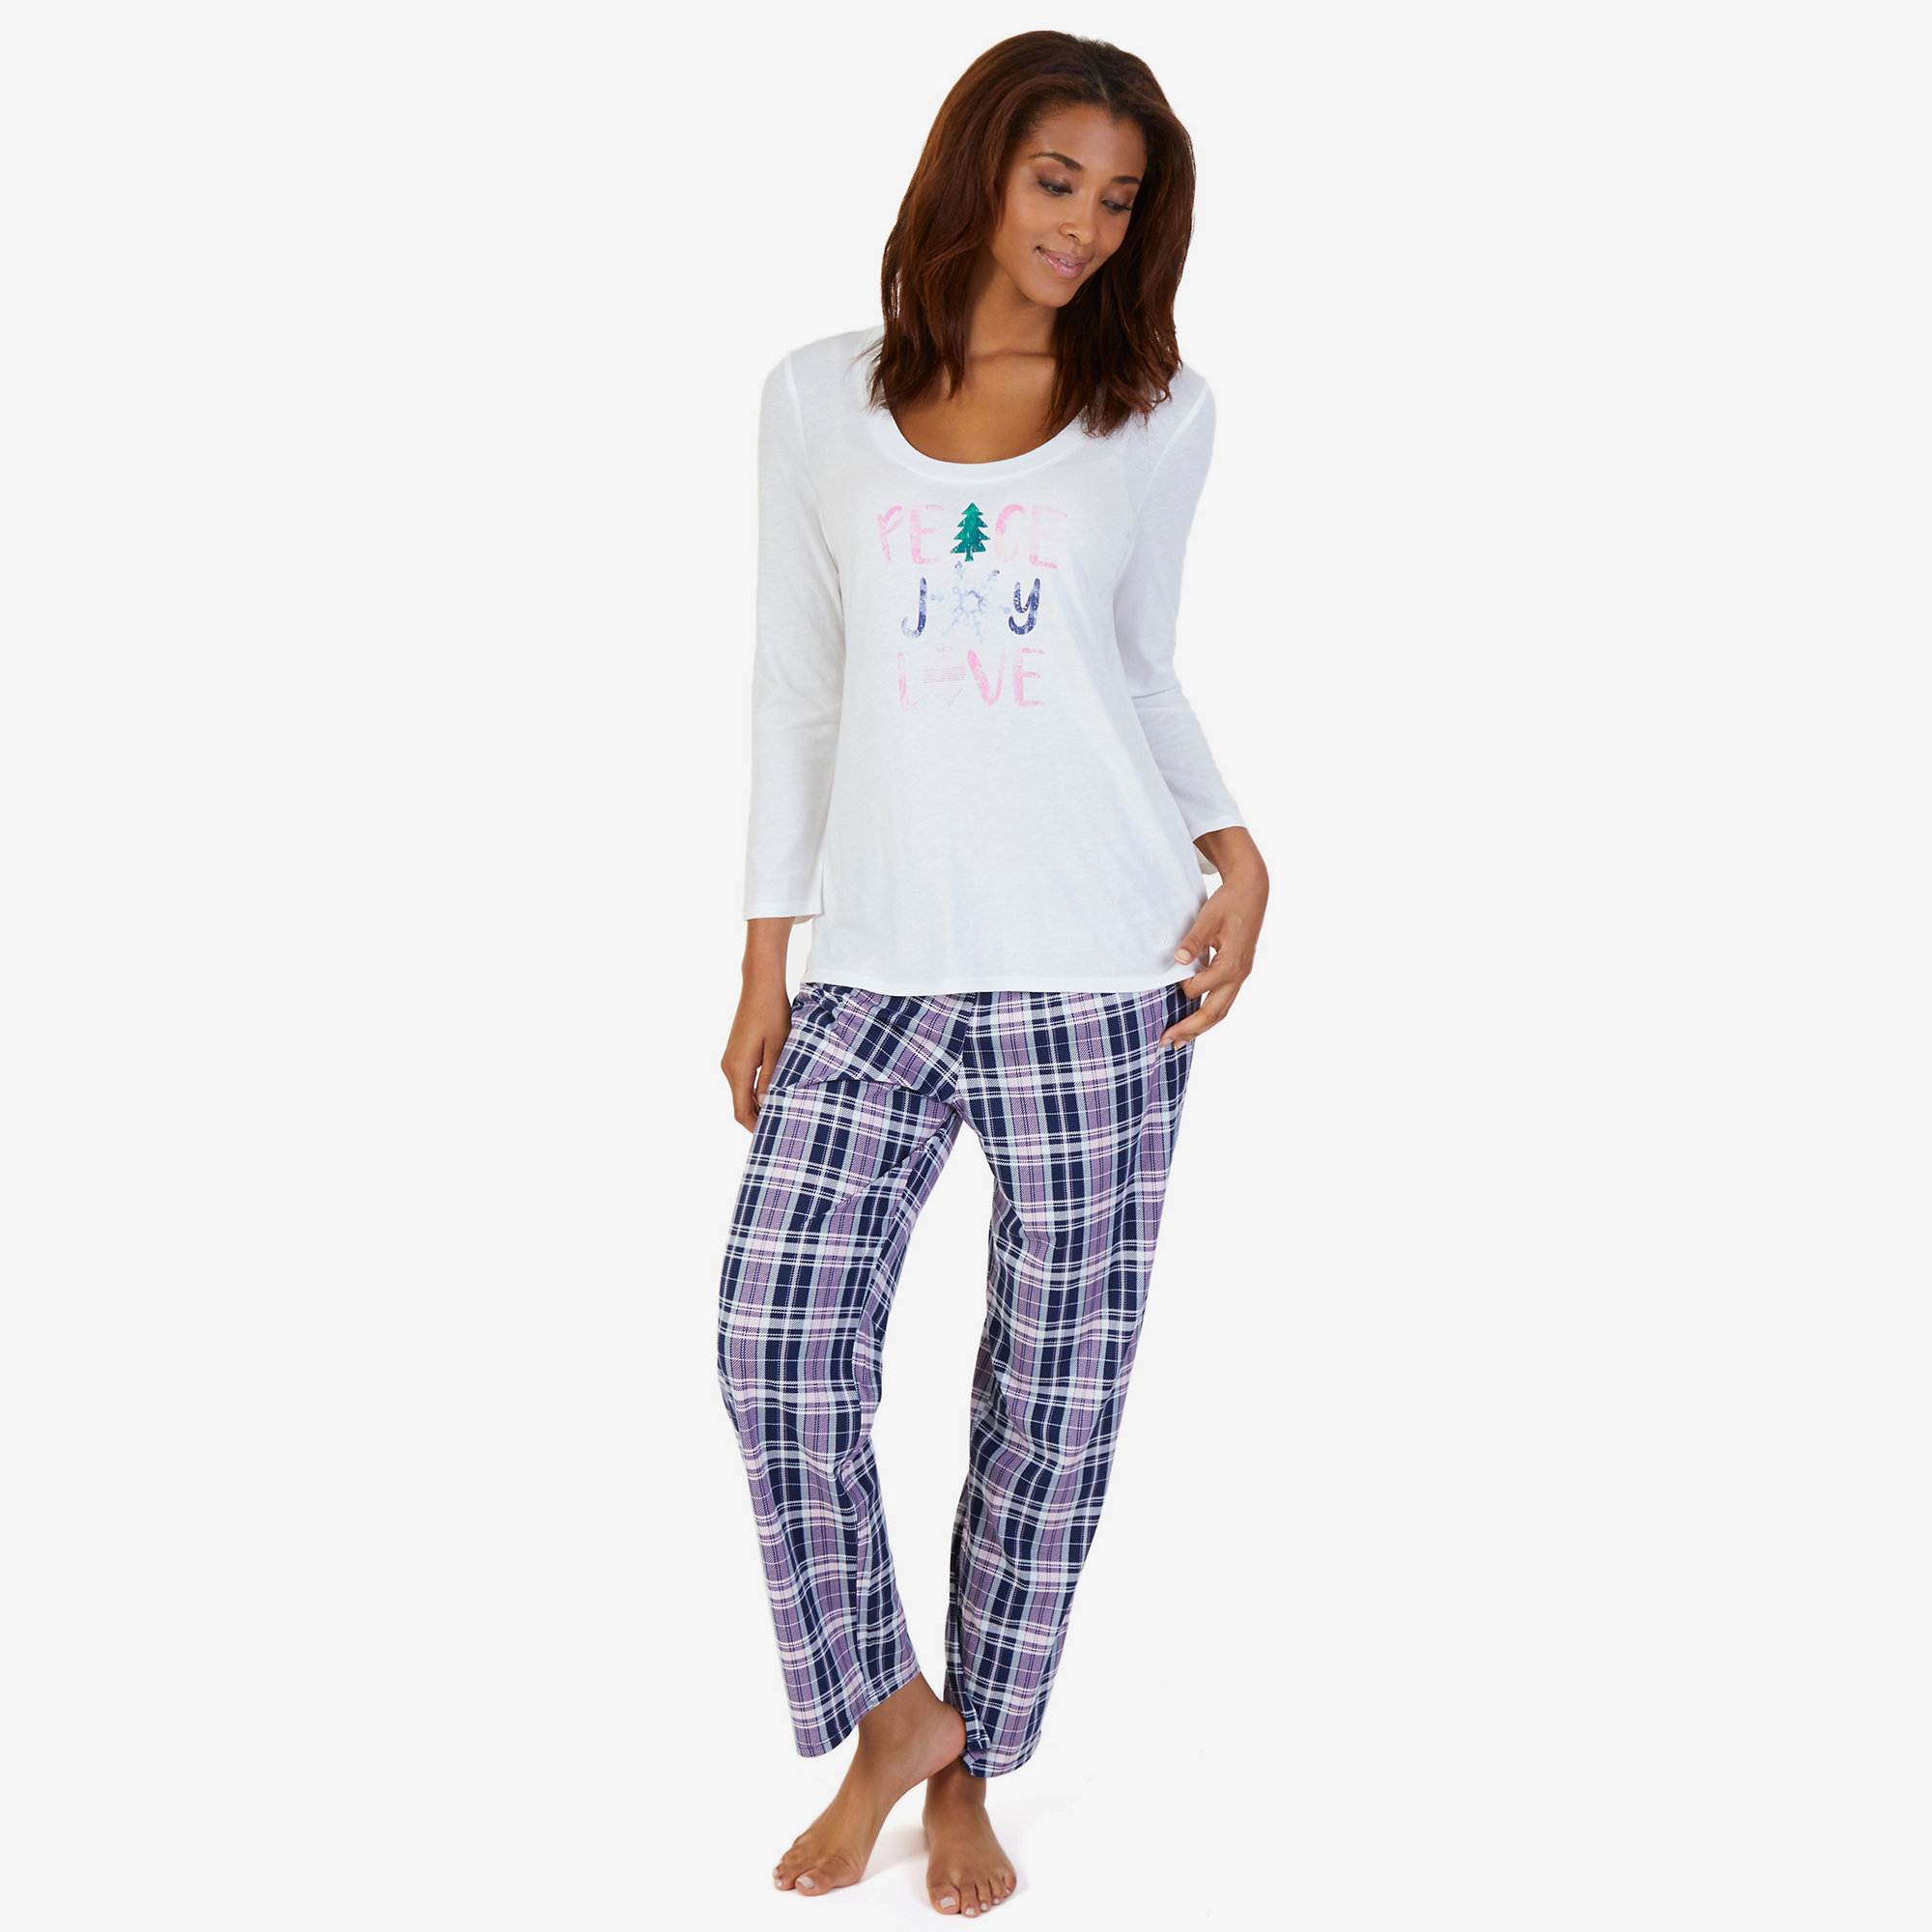 Shop Dillard's for the perfect women's pajama set, available in your favorite fabrics, prints, and brands.